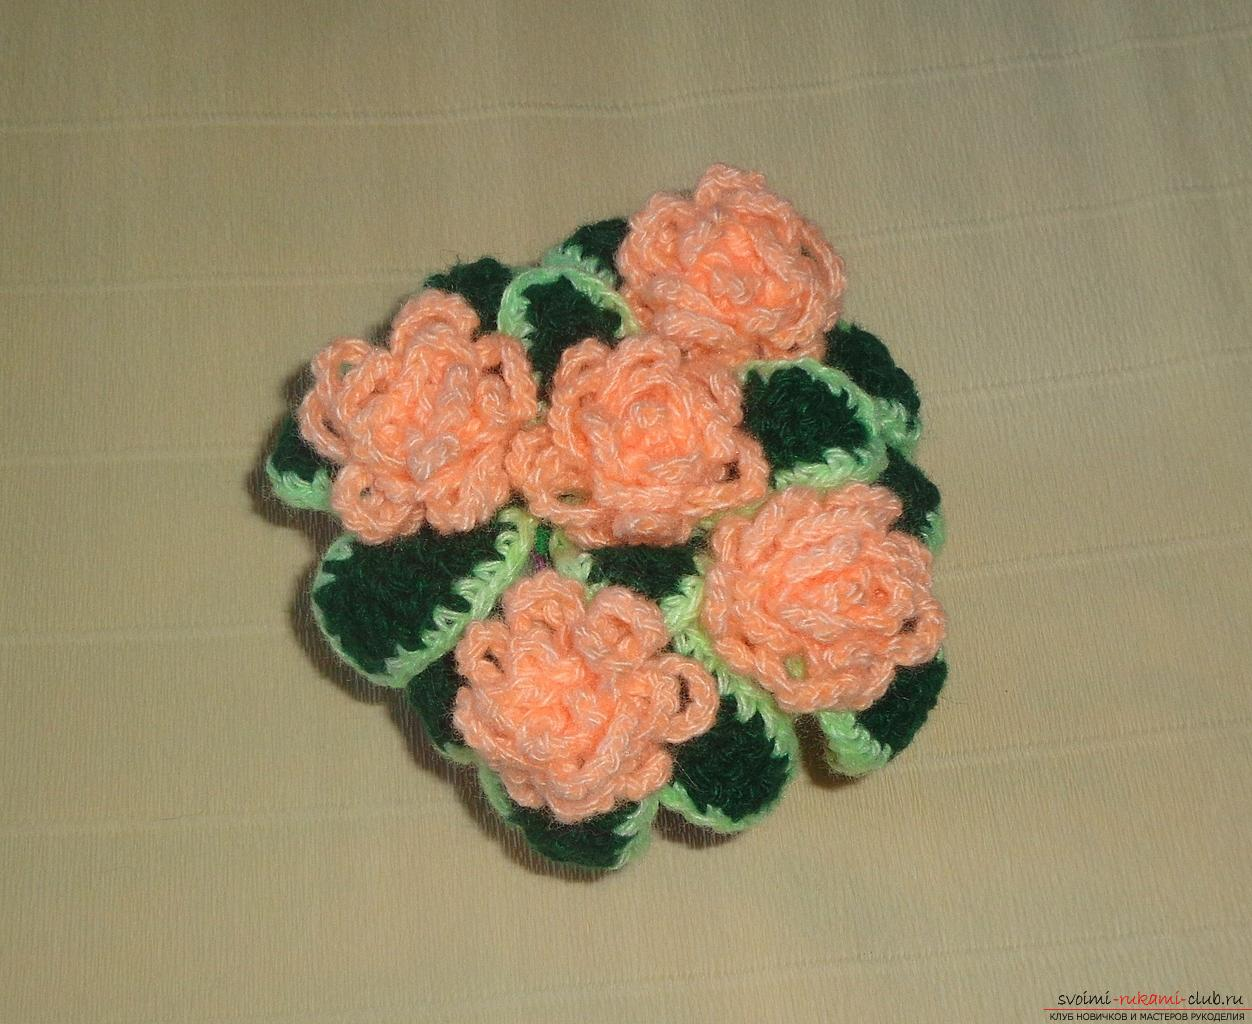 This master class of crochet crochet contains a rose scheme and a description of knitting .. Photo # 34